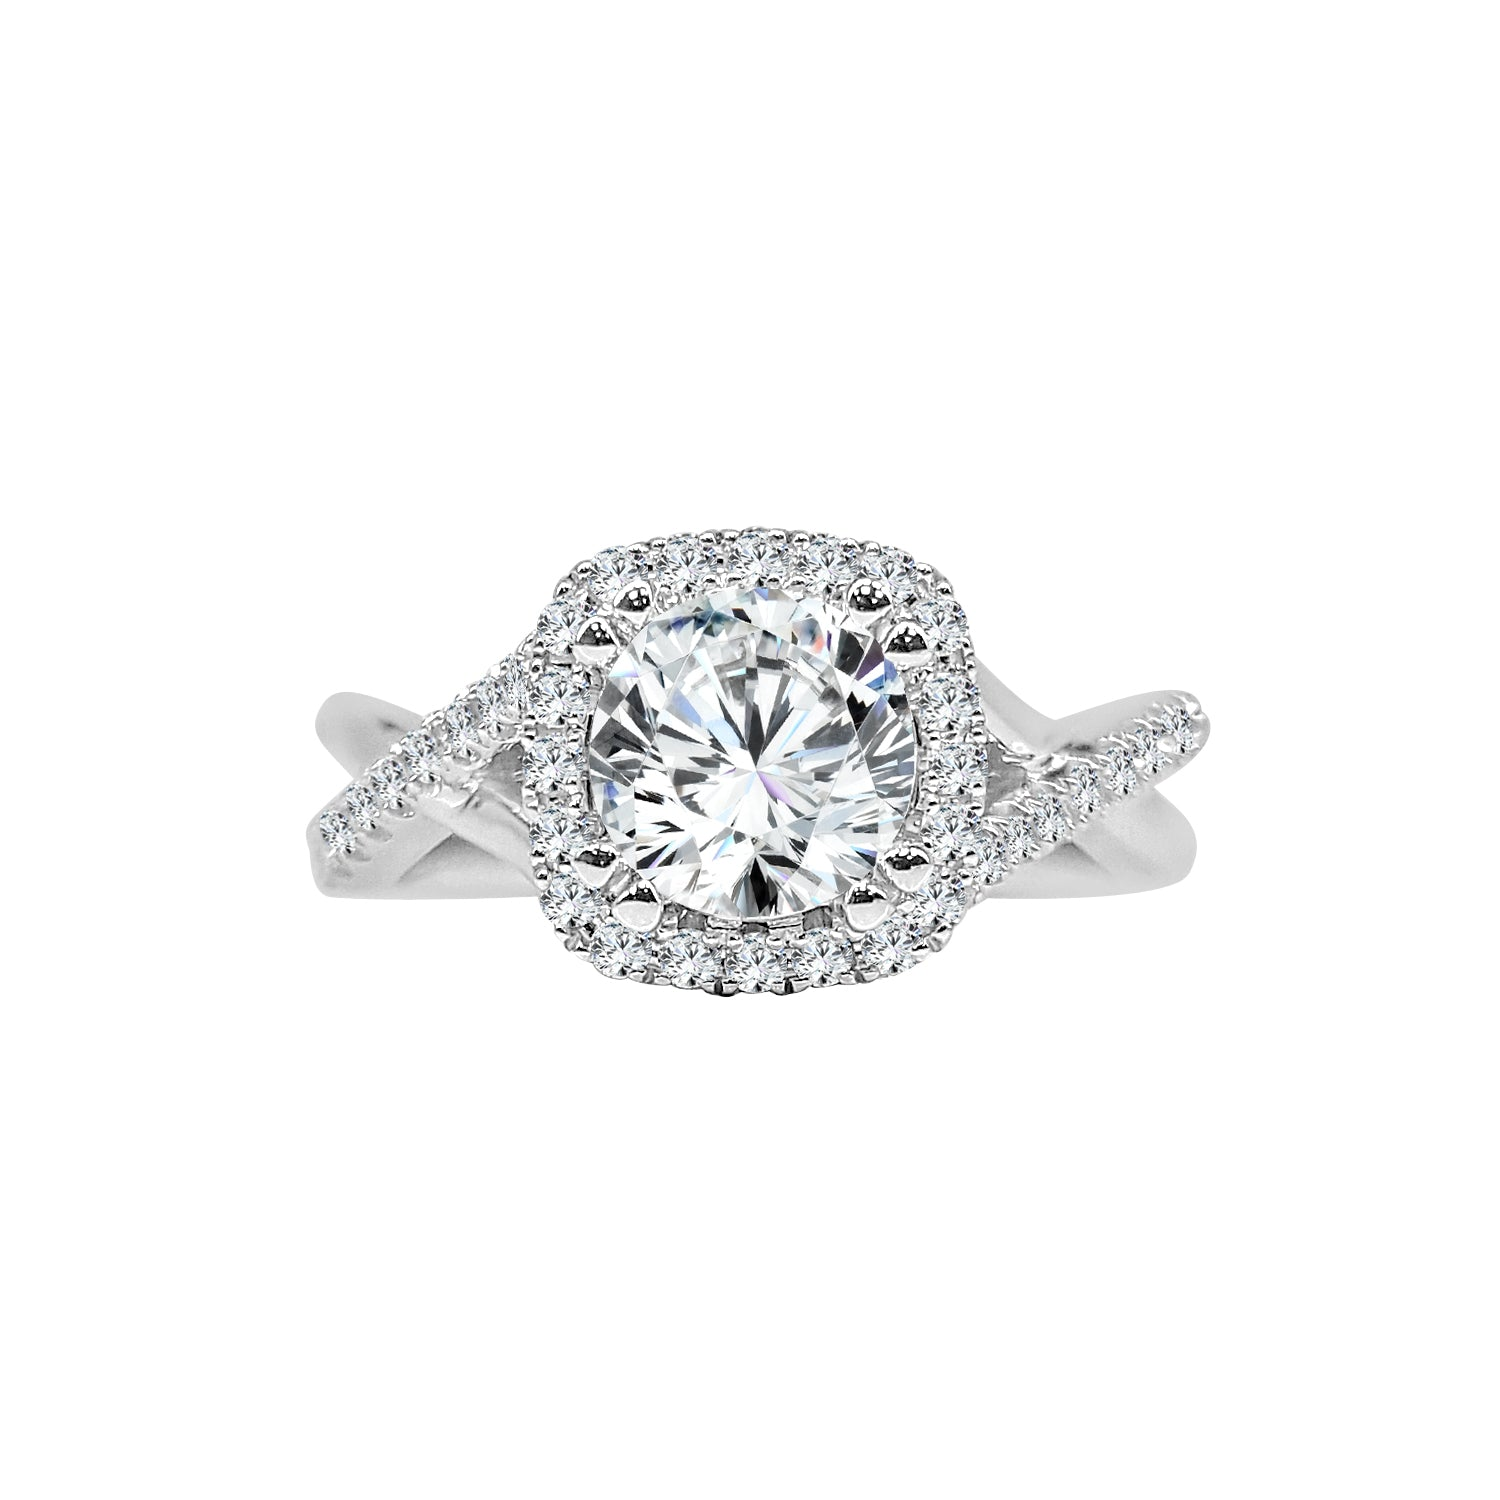 Fana Cushion Cut Halo Engagement Ring With Diamond And Smooth Twist Band